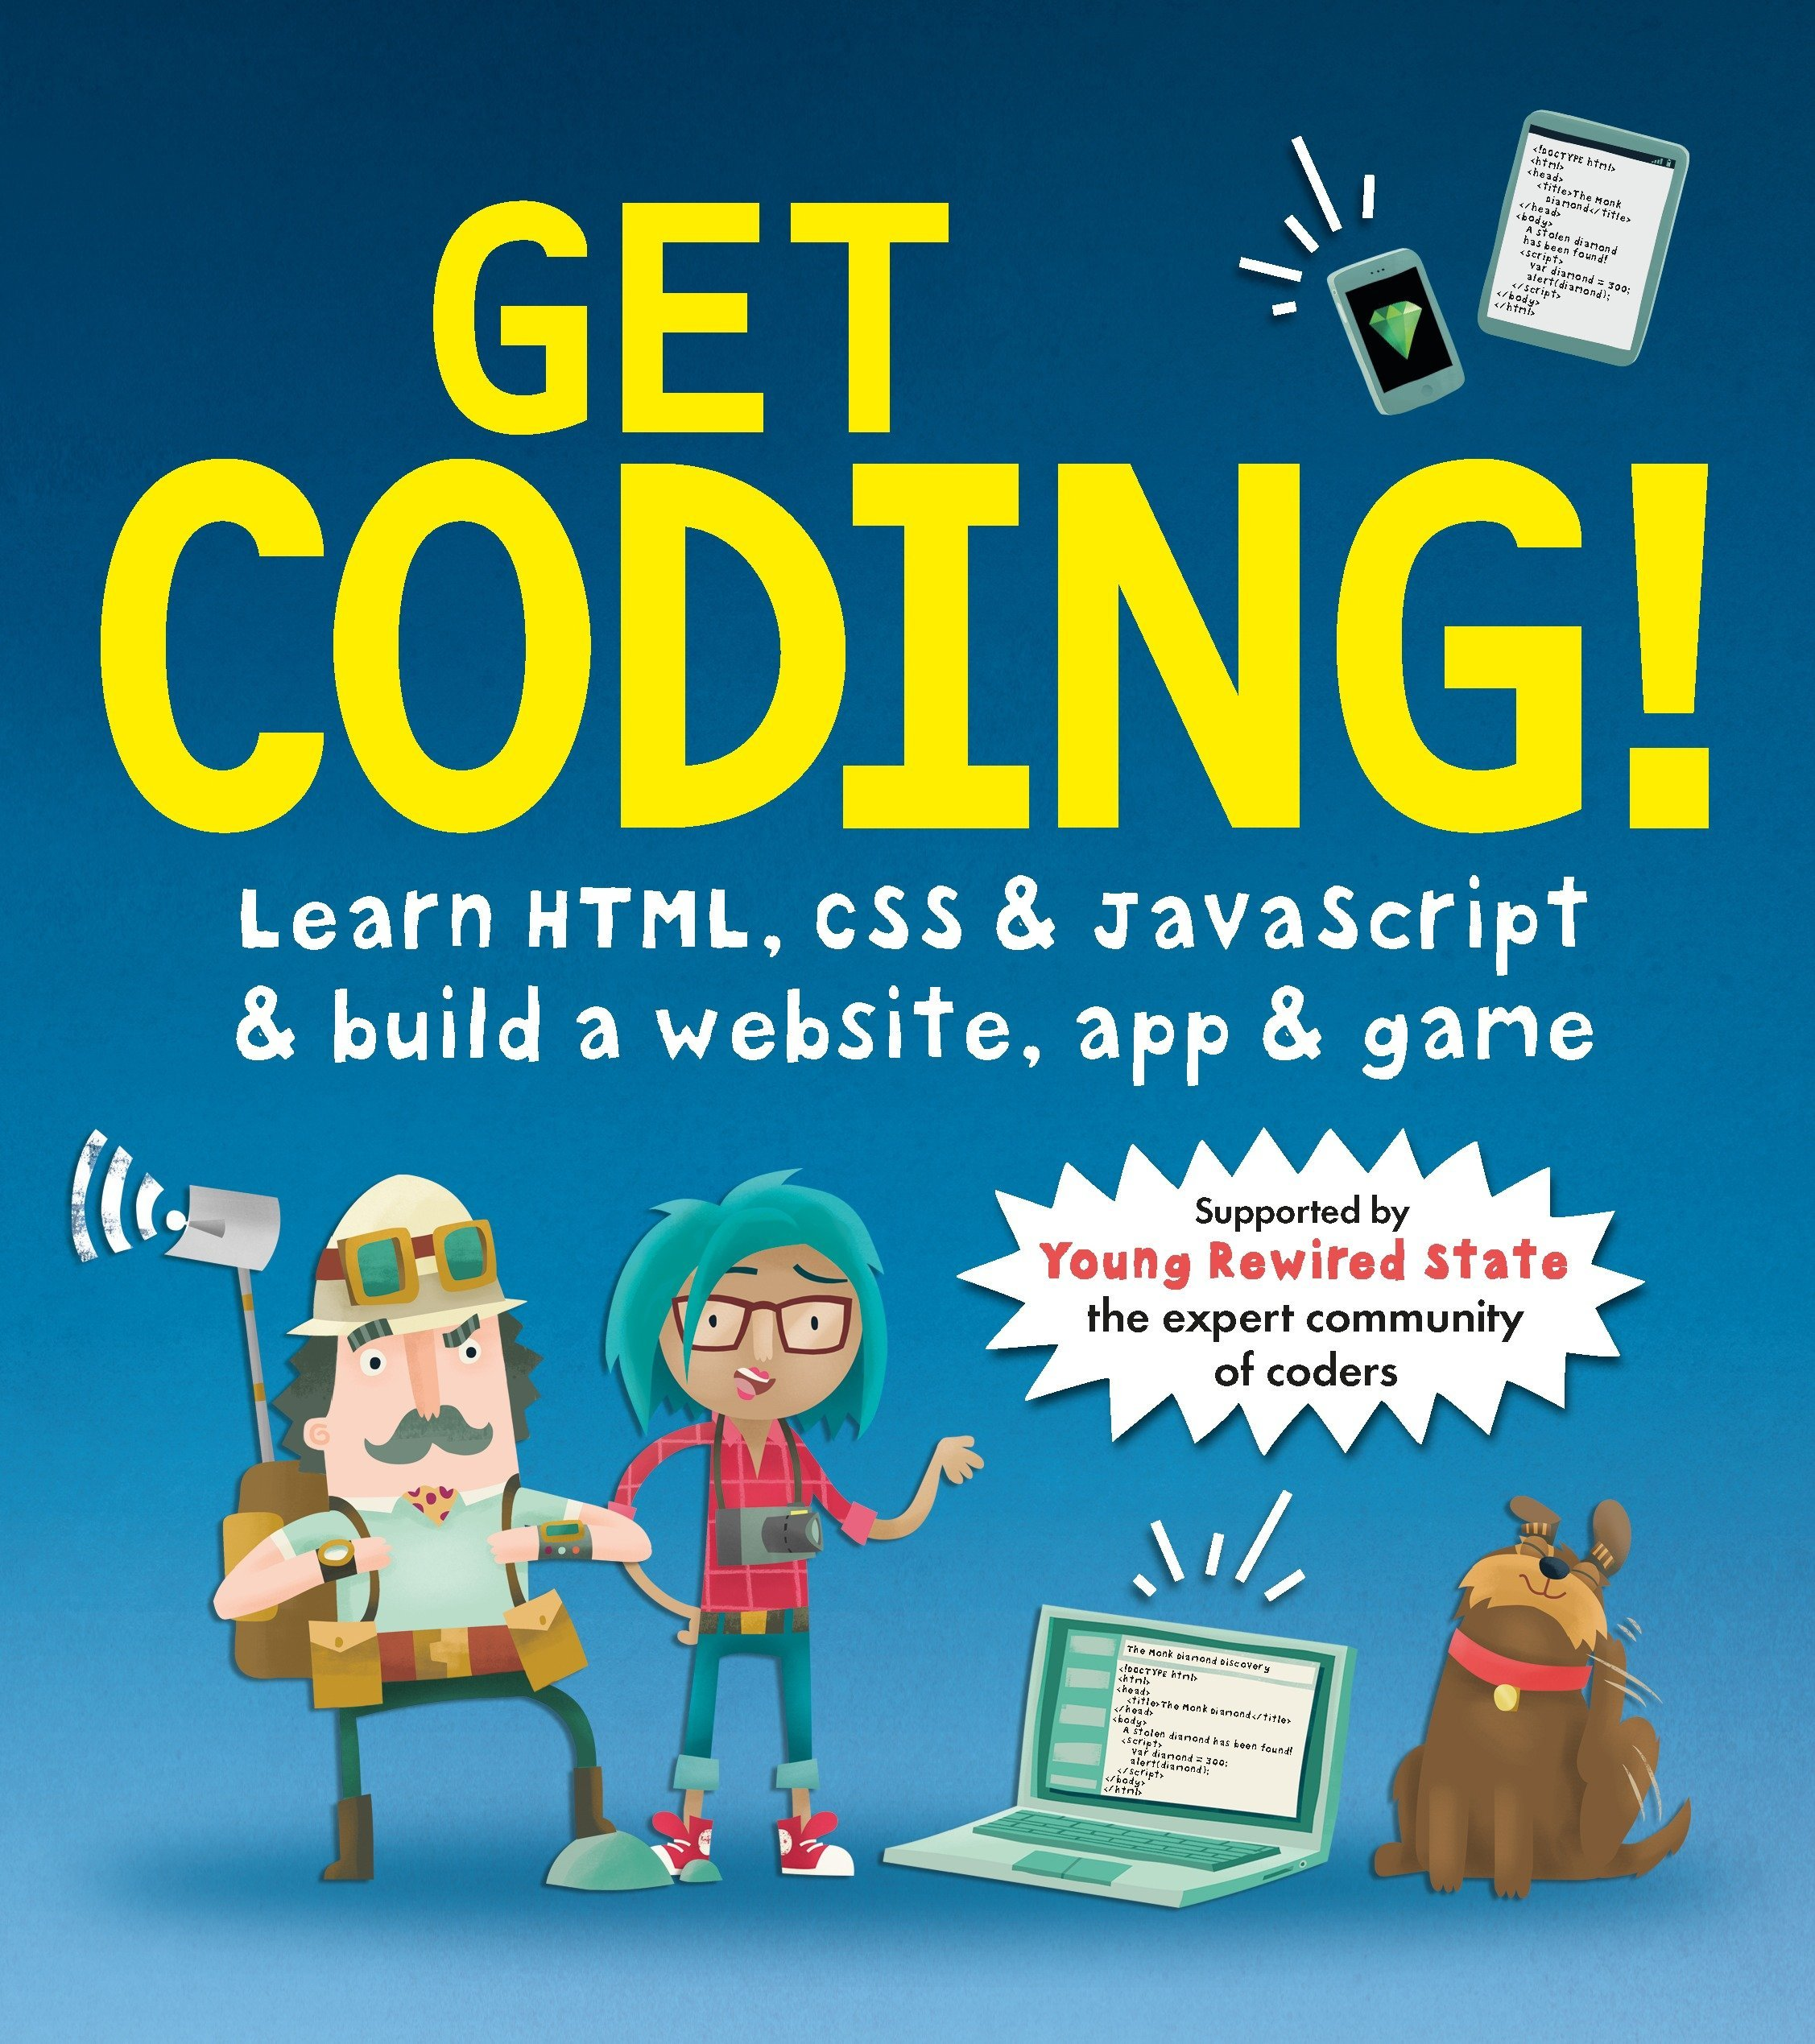 Get Coding!: Learn HTML, CSS & JavaScript & Build a Website, App